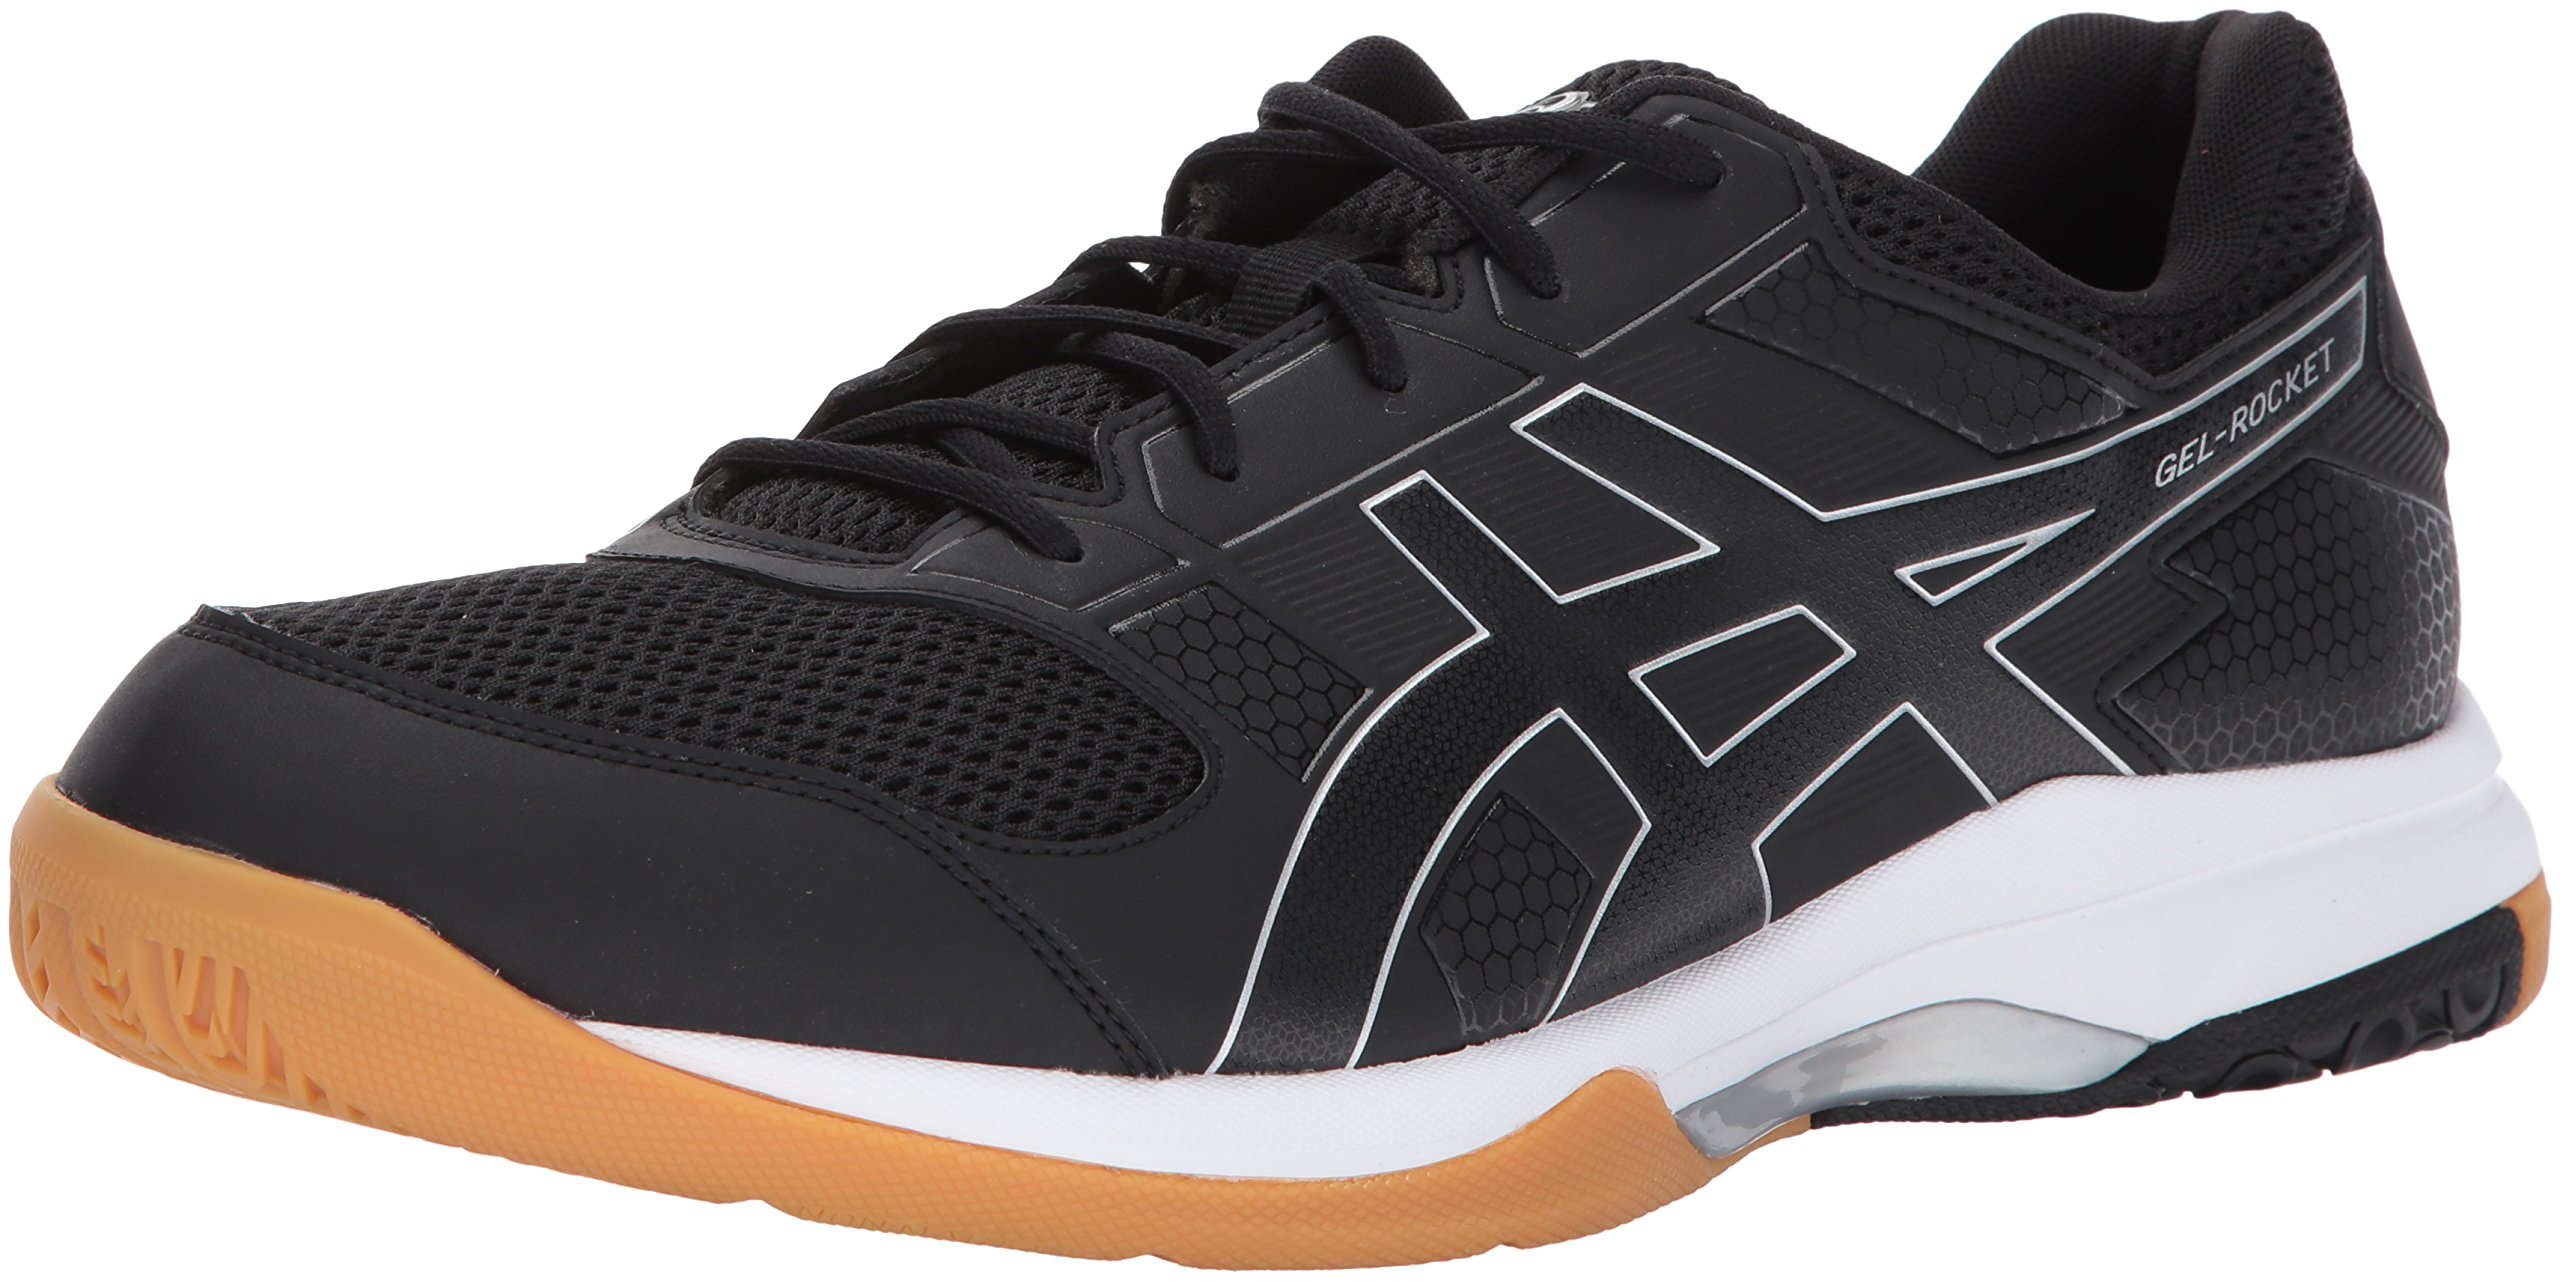 ASICS Mens Gel-Rocket 8 Volleyball Shoe, Black/White, 11.5 Medium US by ASICS